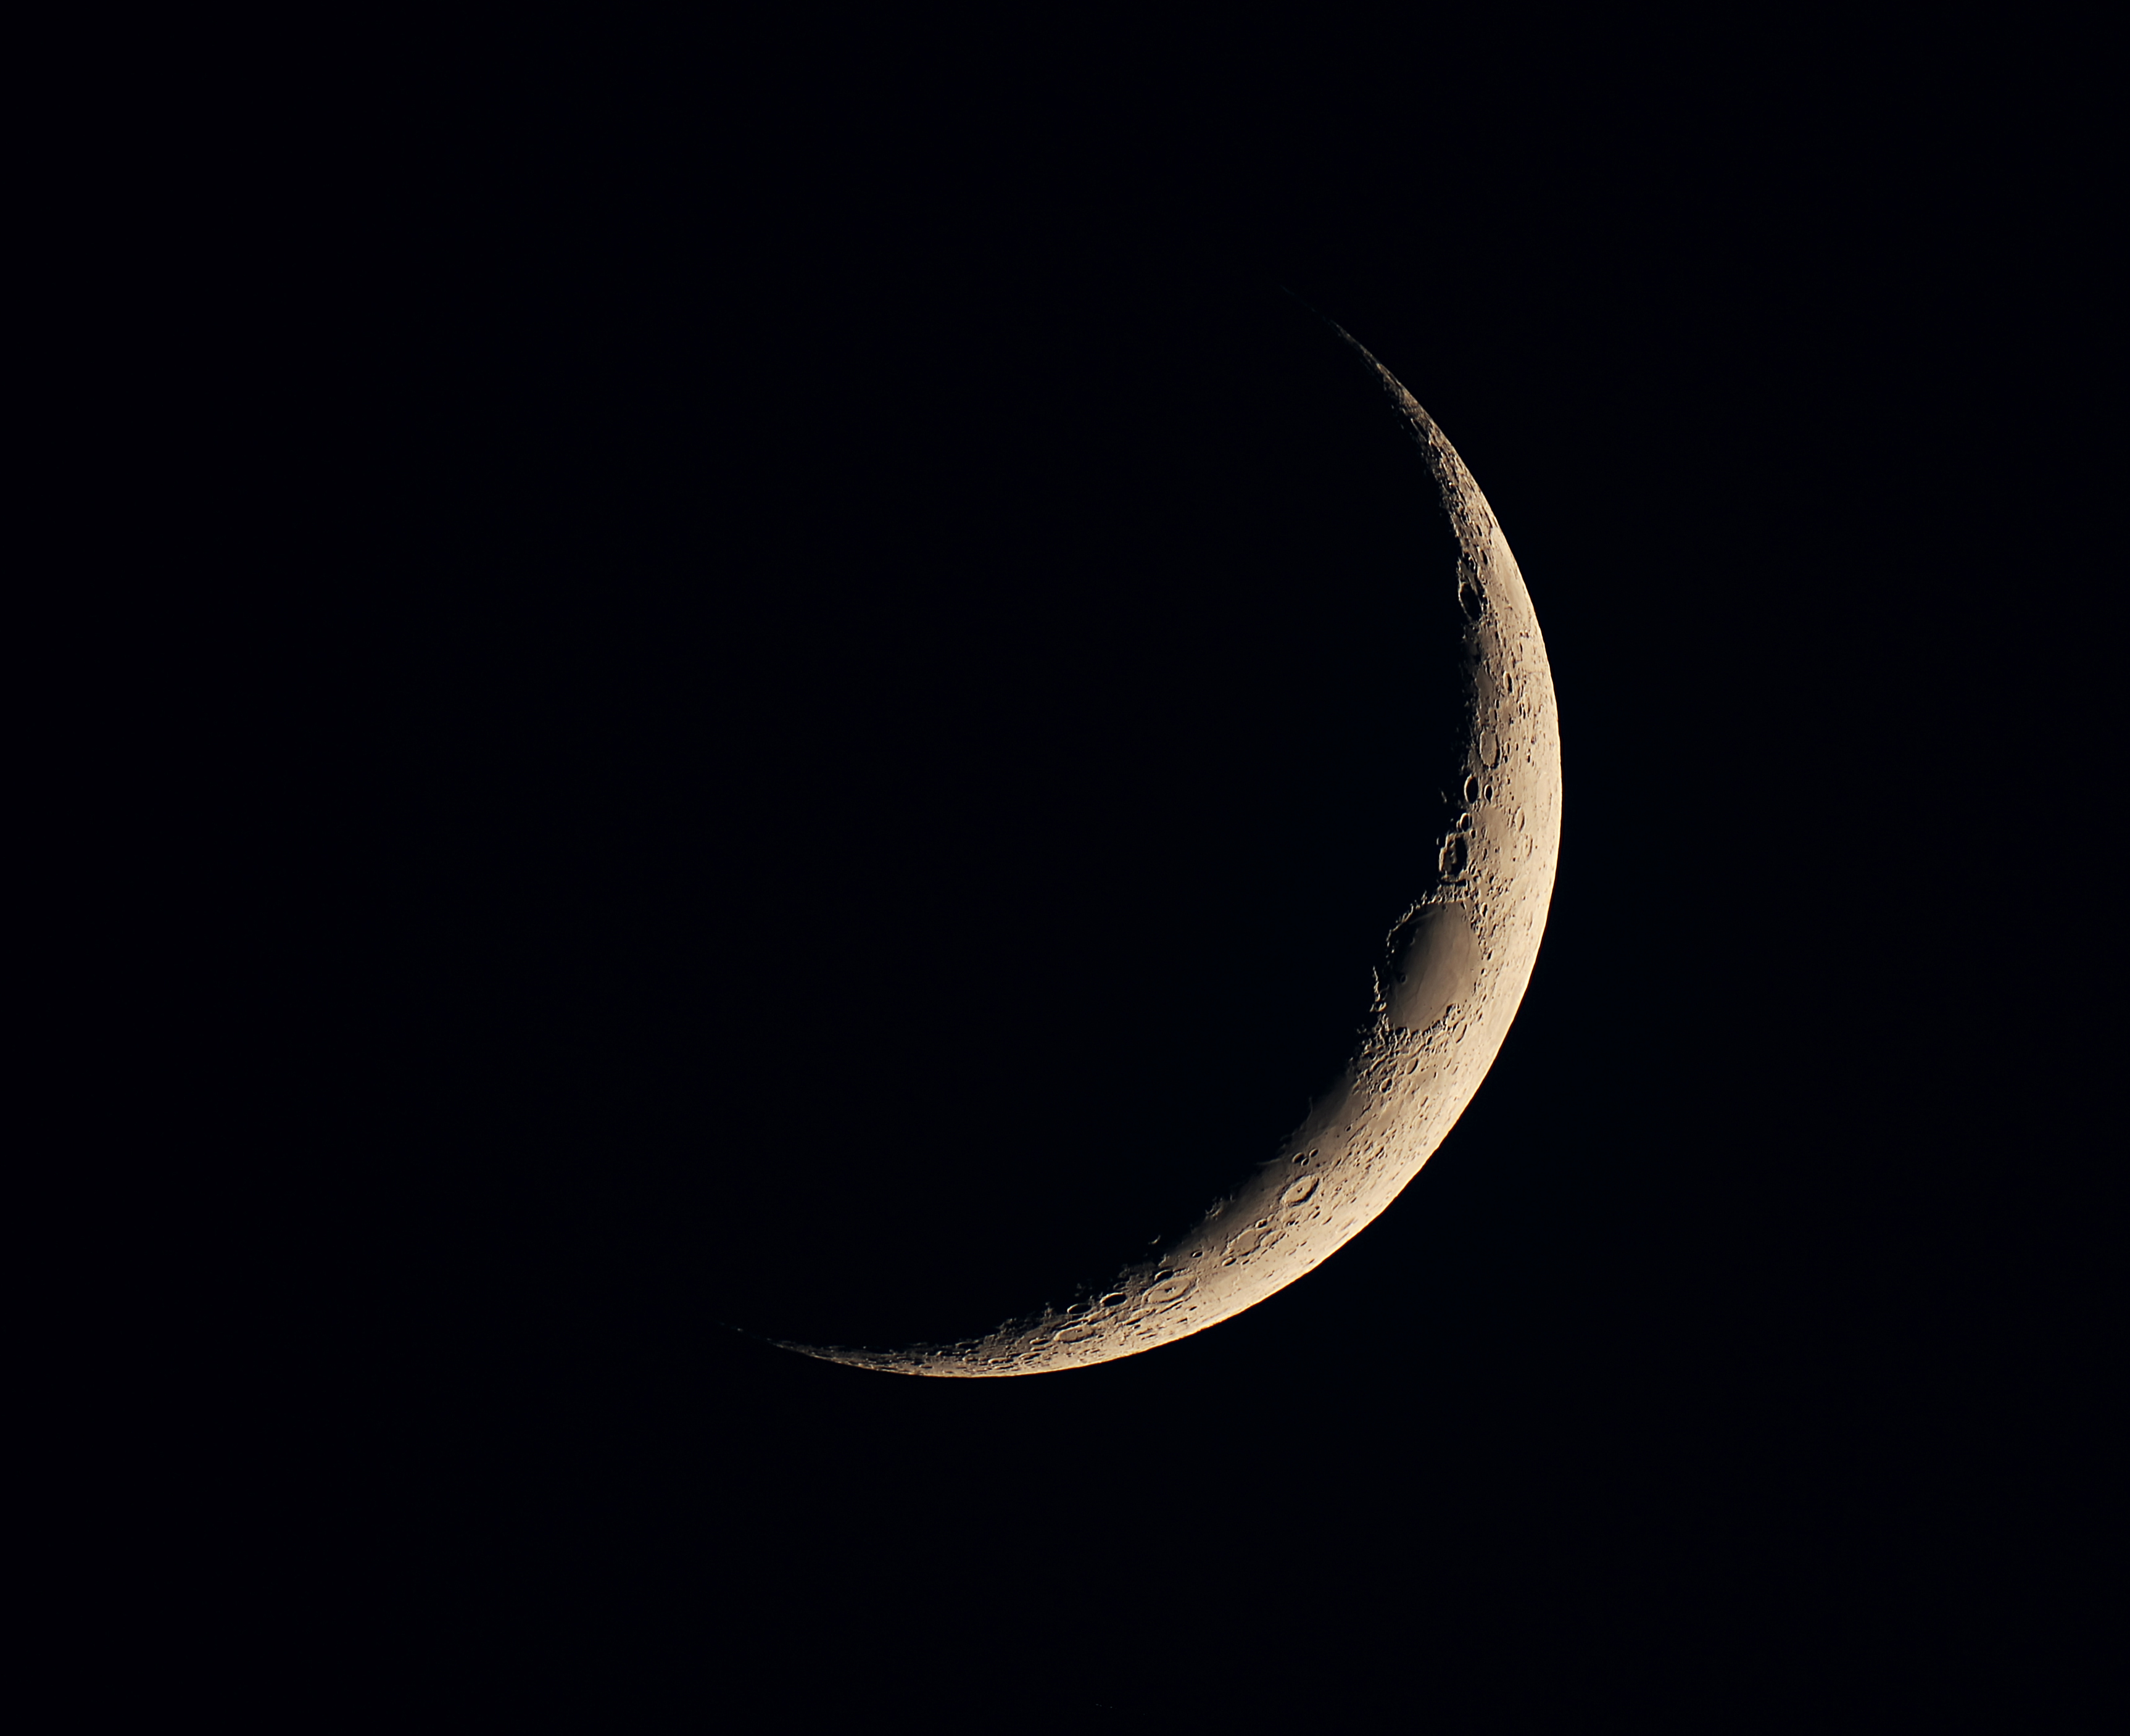 Budding Night Sky Photographer Sees a Stunning Crescent Moon (Image)